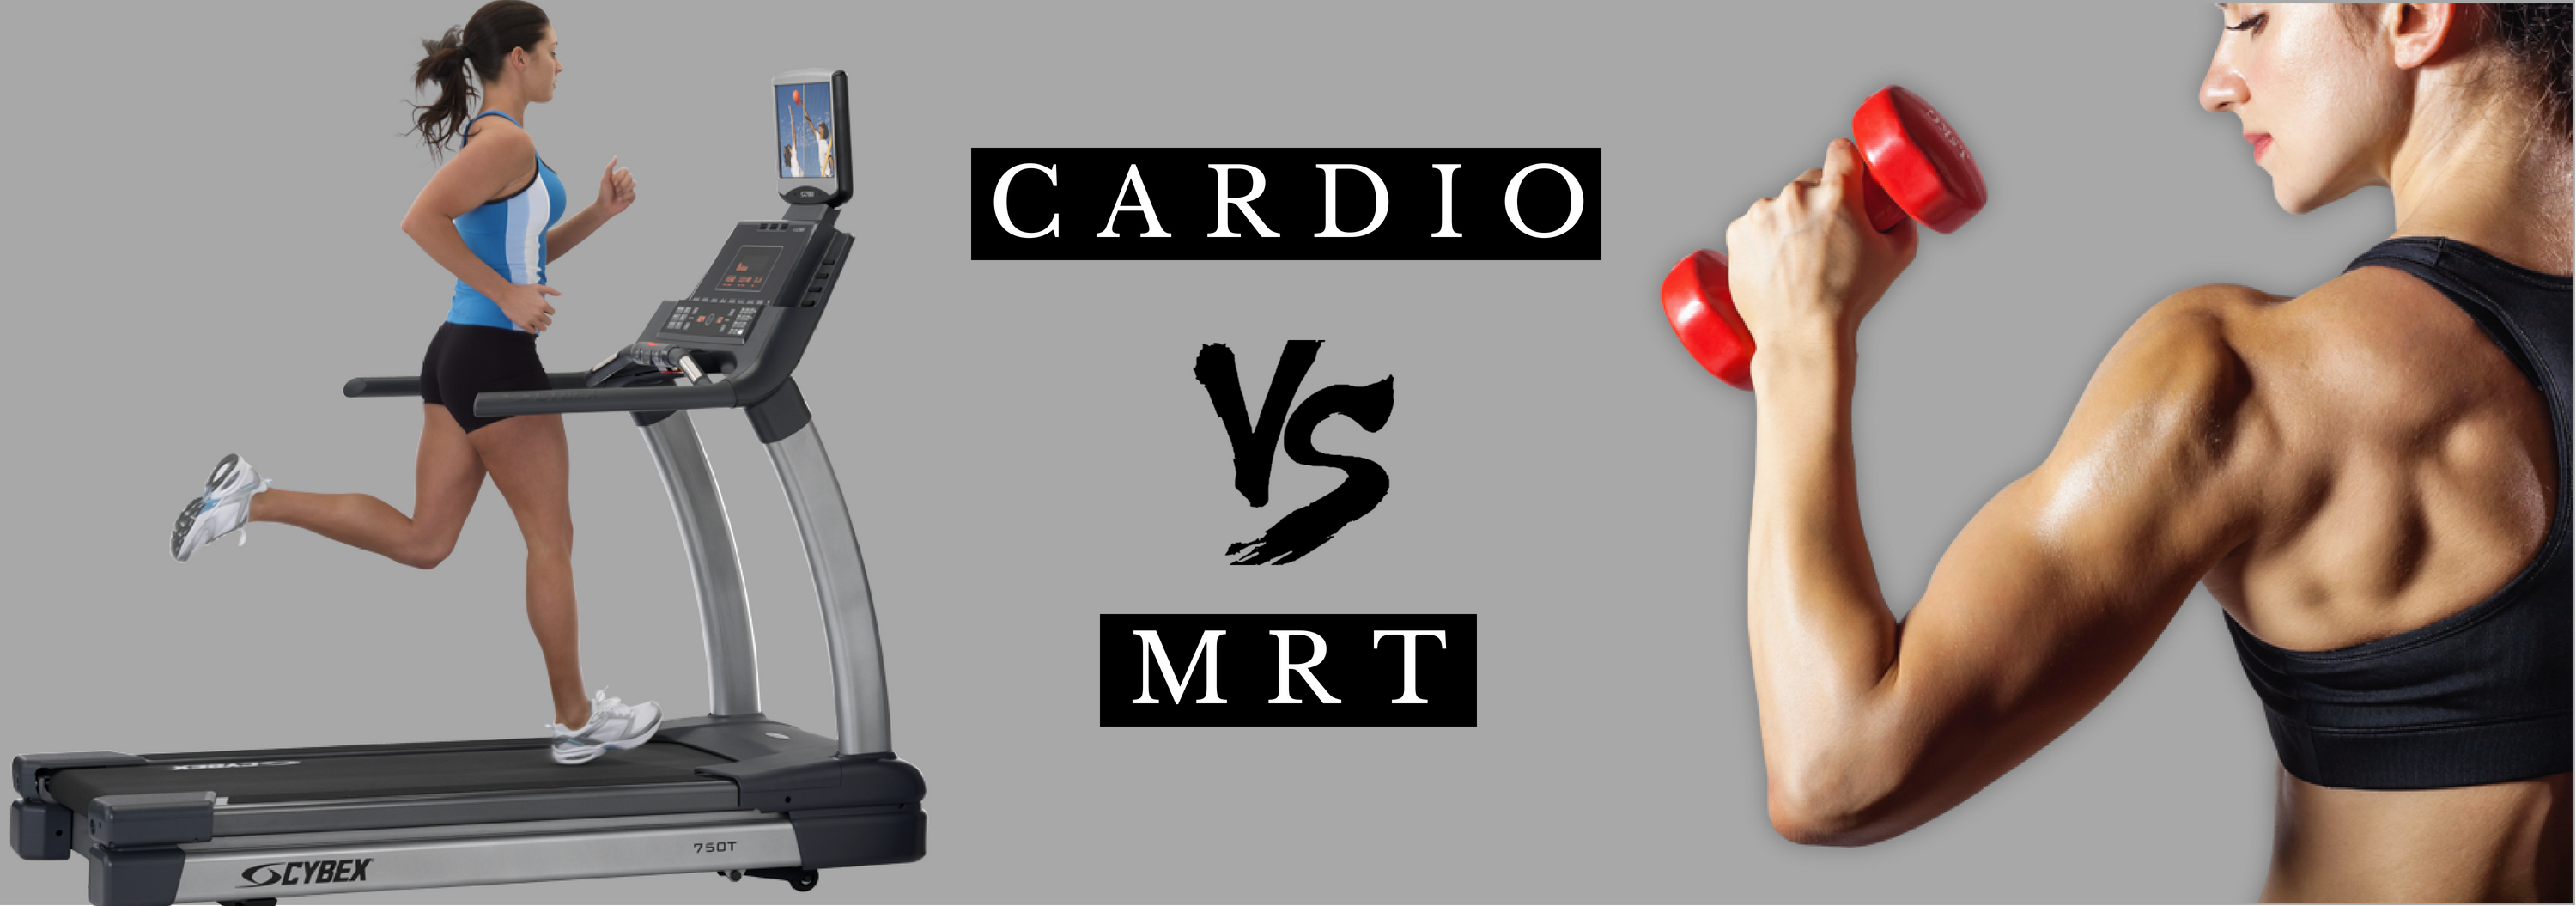 Burn More Fat – Cardio or MRT: Which workout burns more fat?